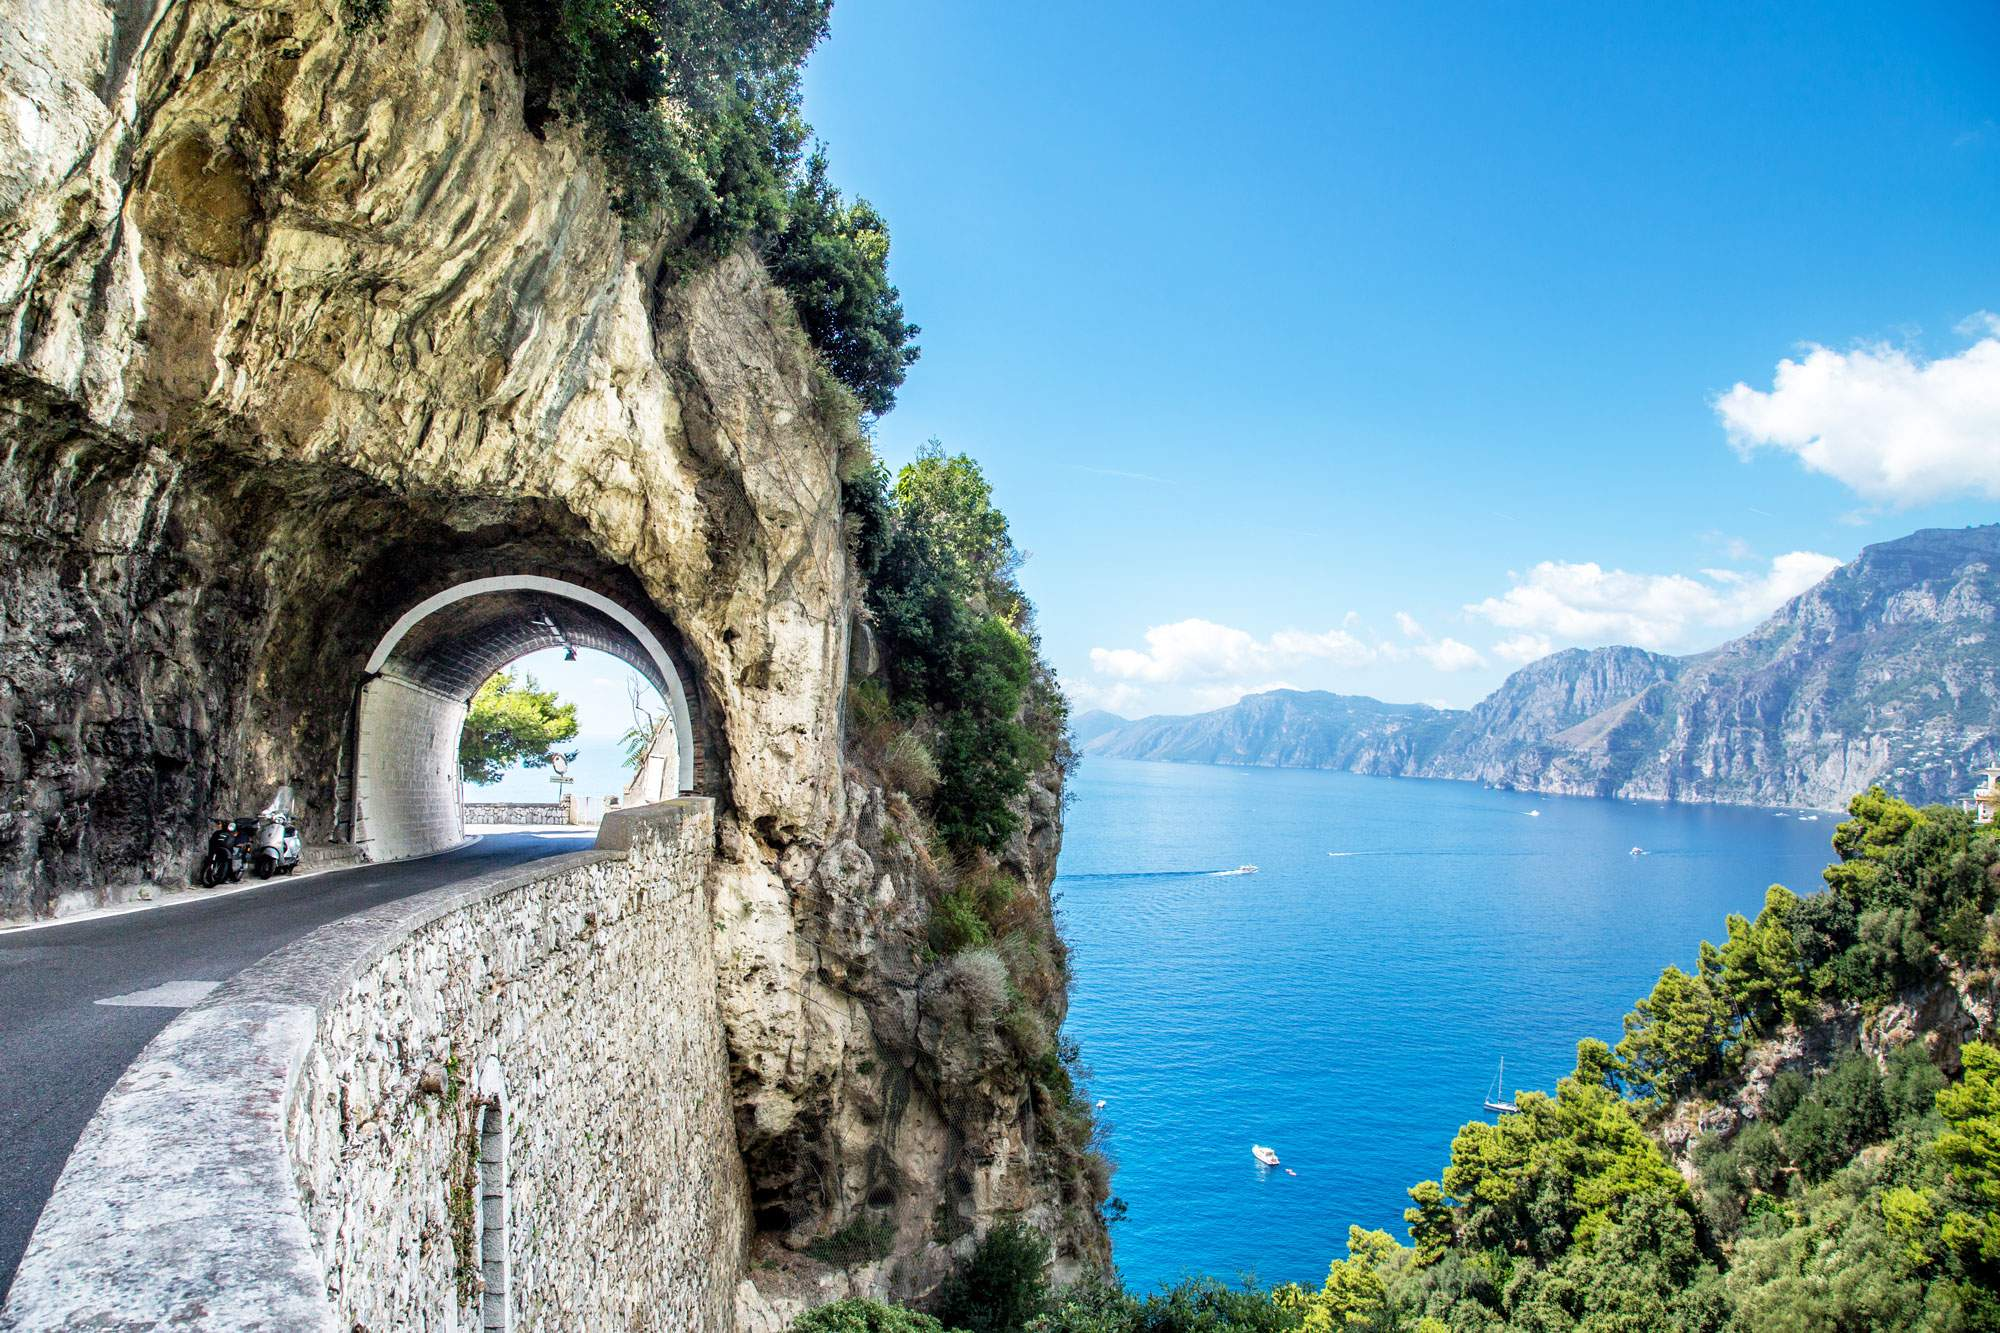 amalfi-coast-roadtrip-driving-tunnel-seaside